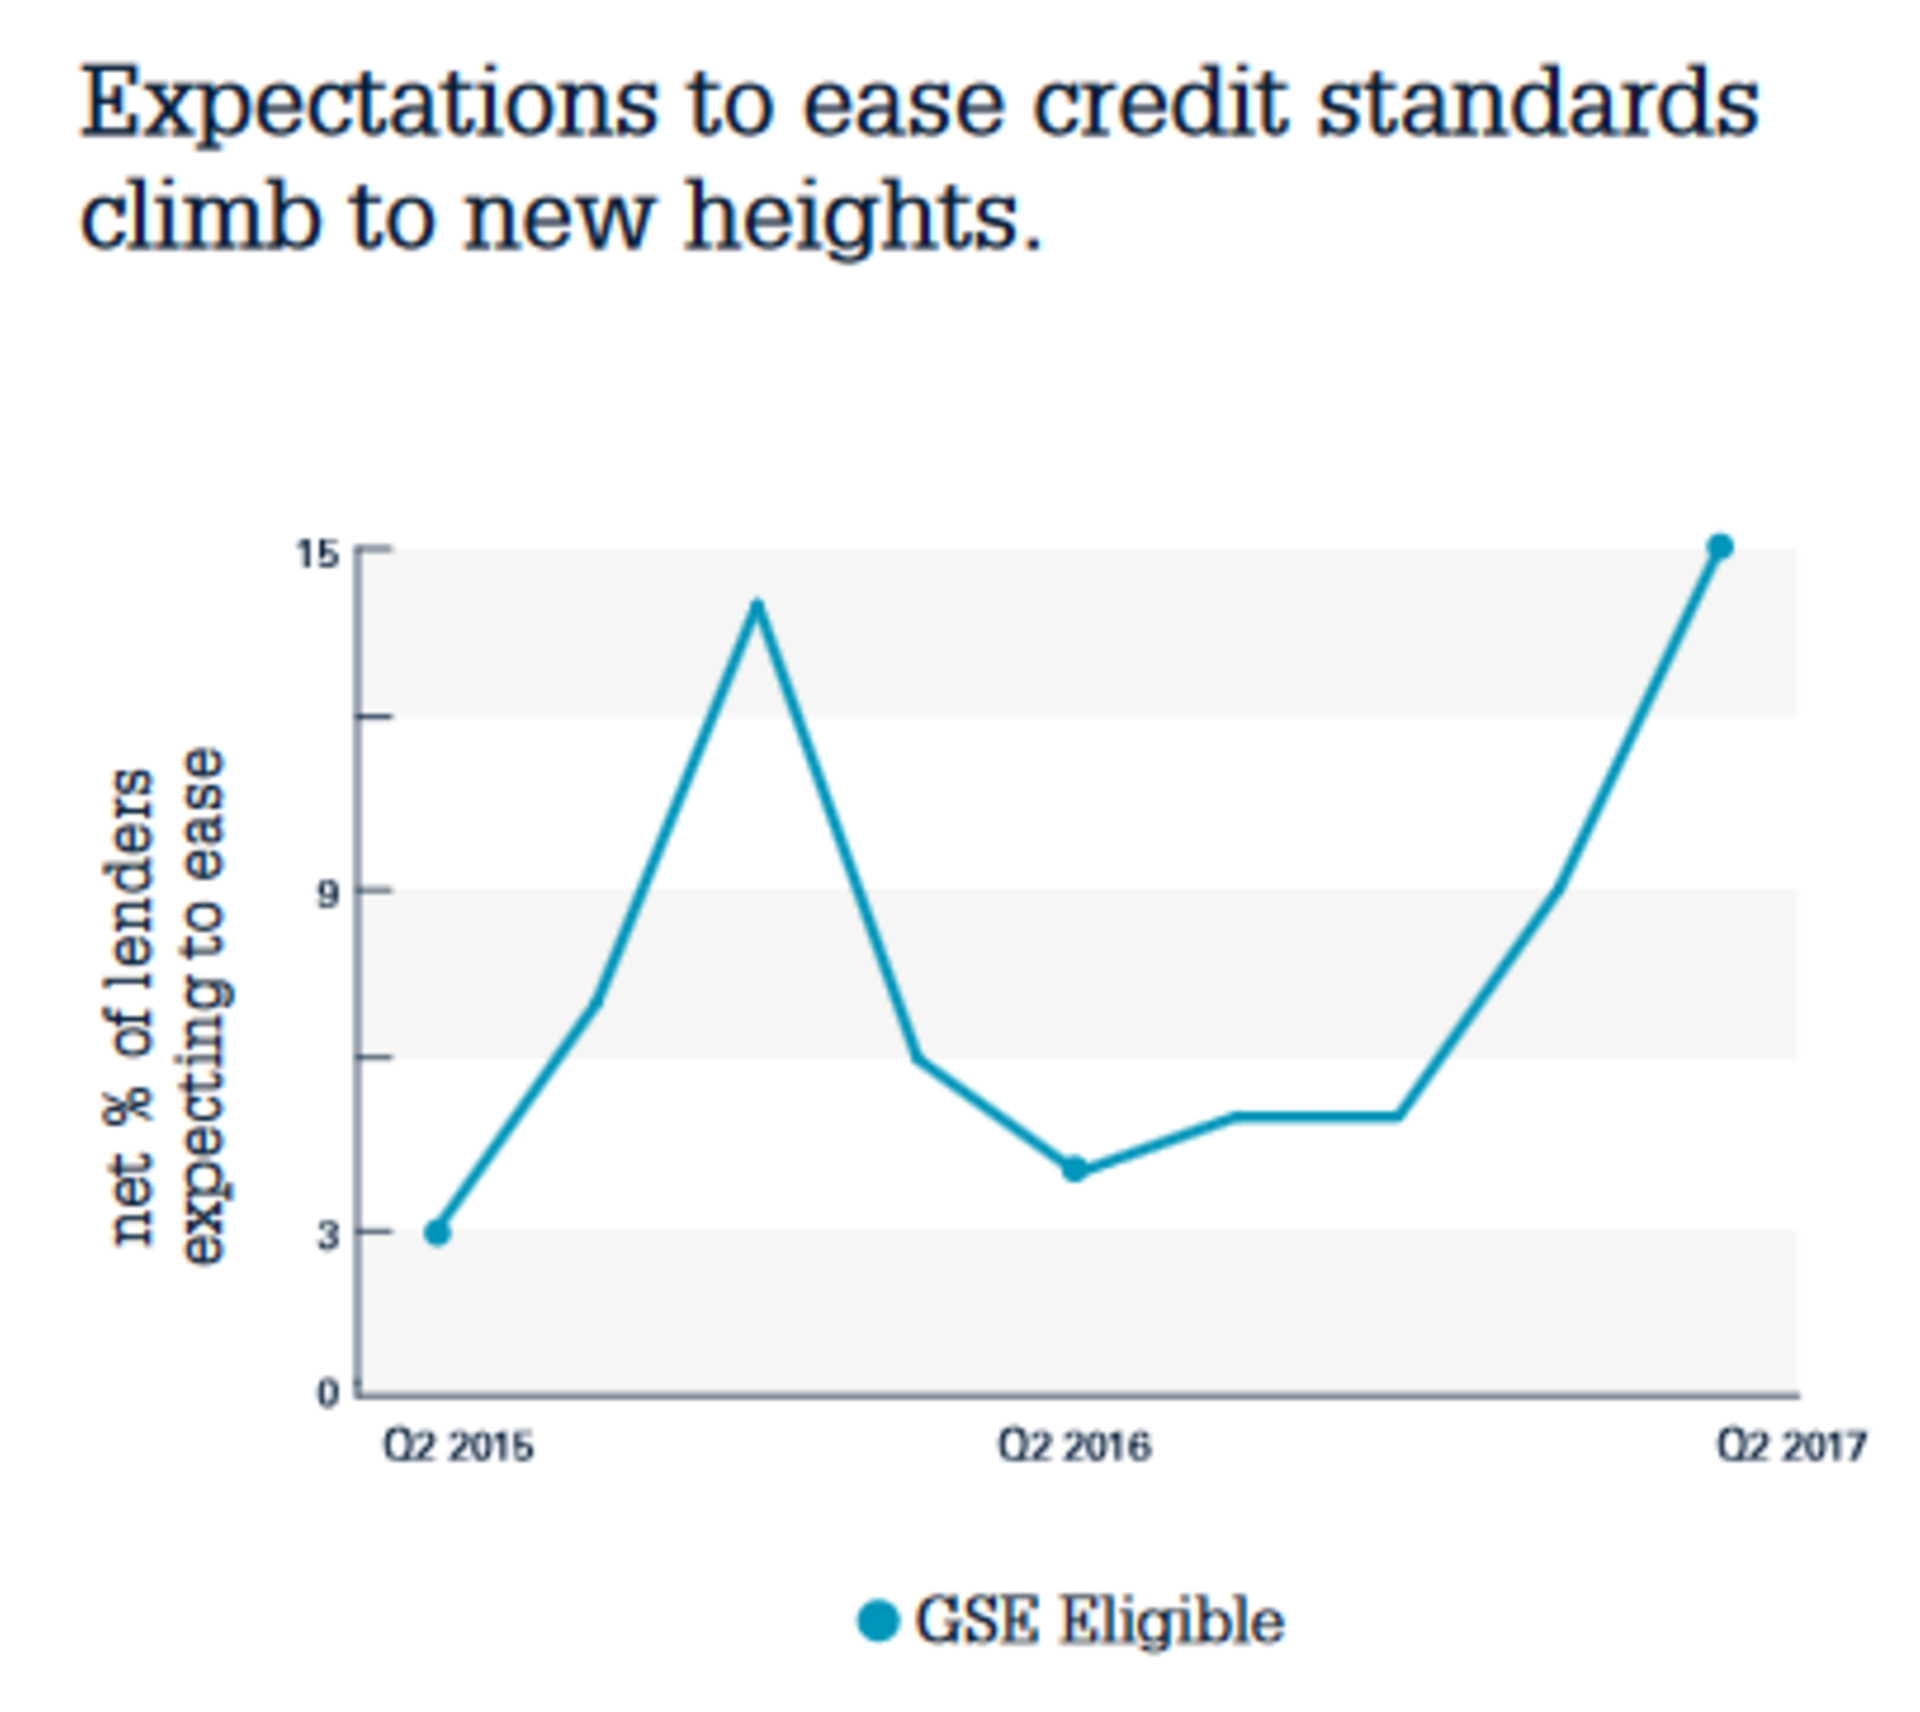 Mortgage lenders are easing credit standards because demand is slowing